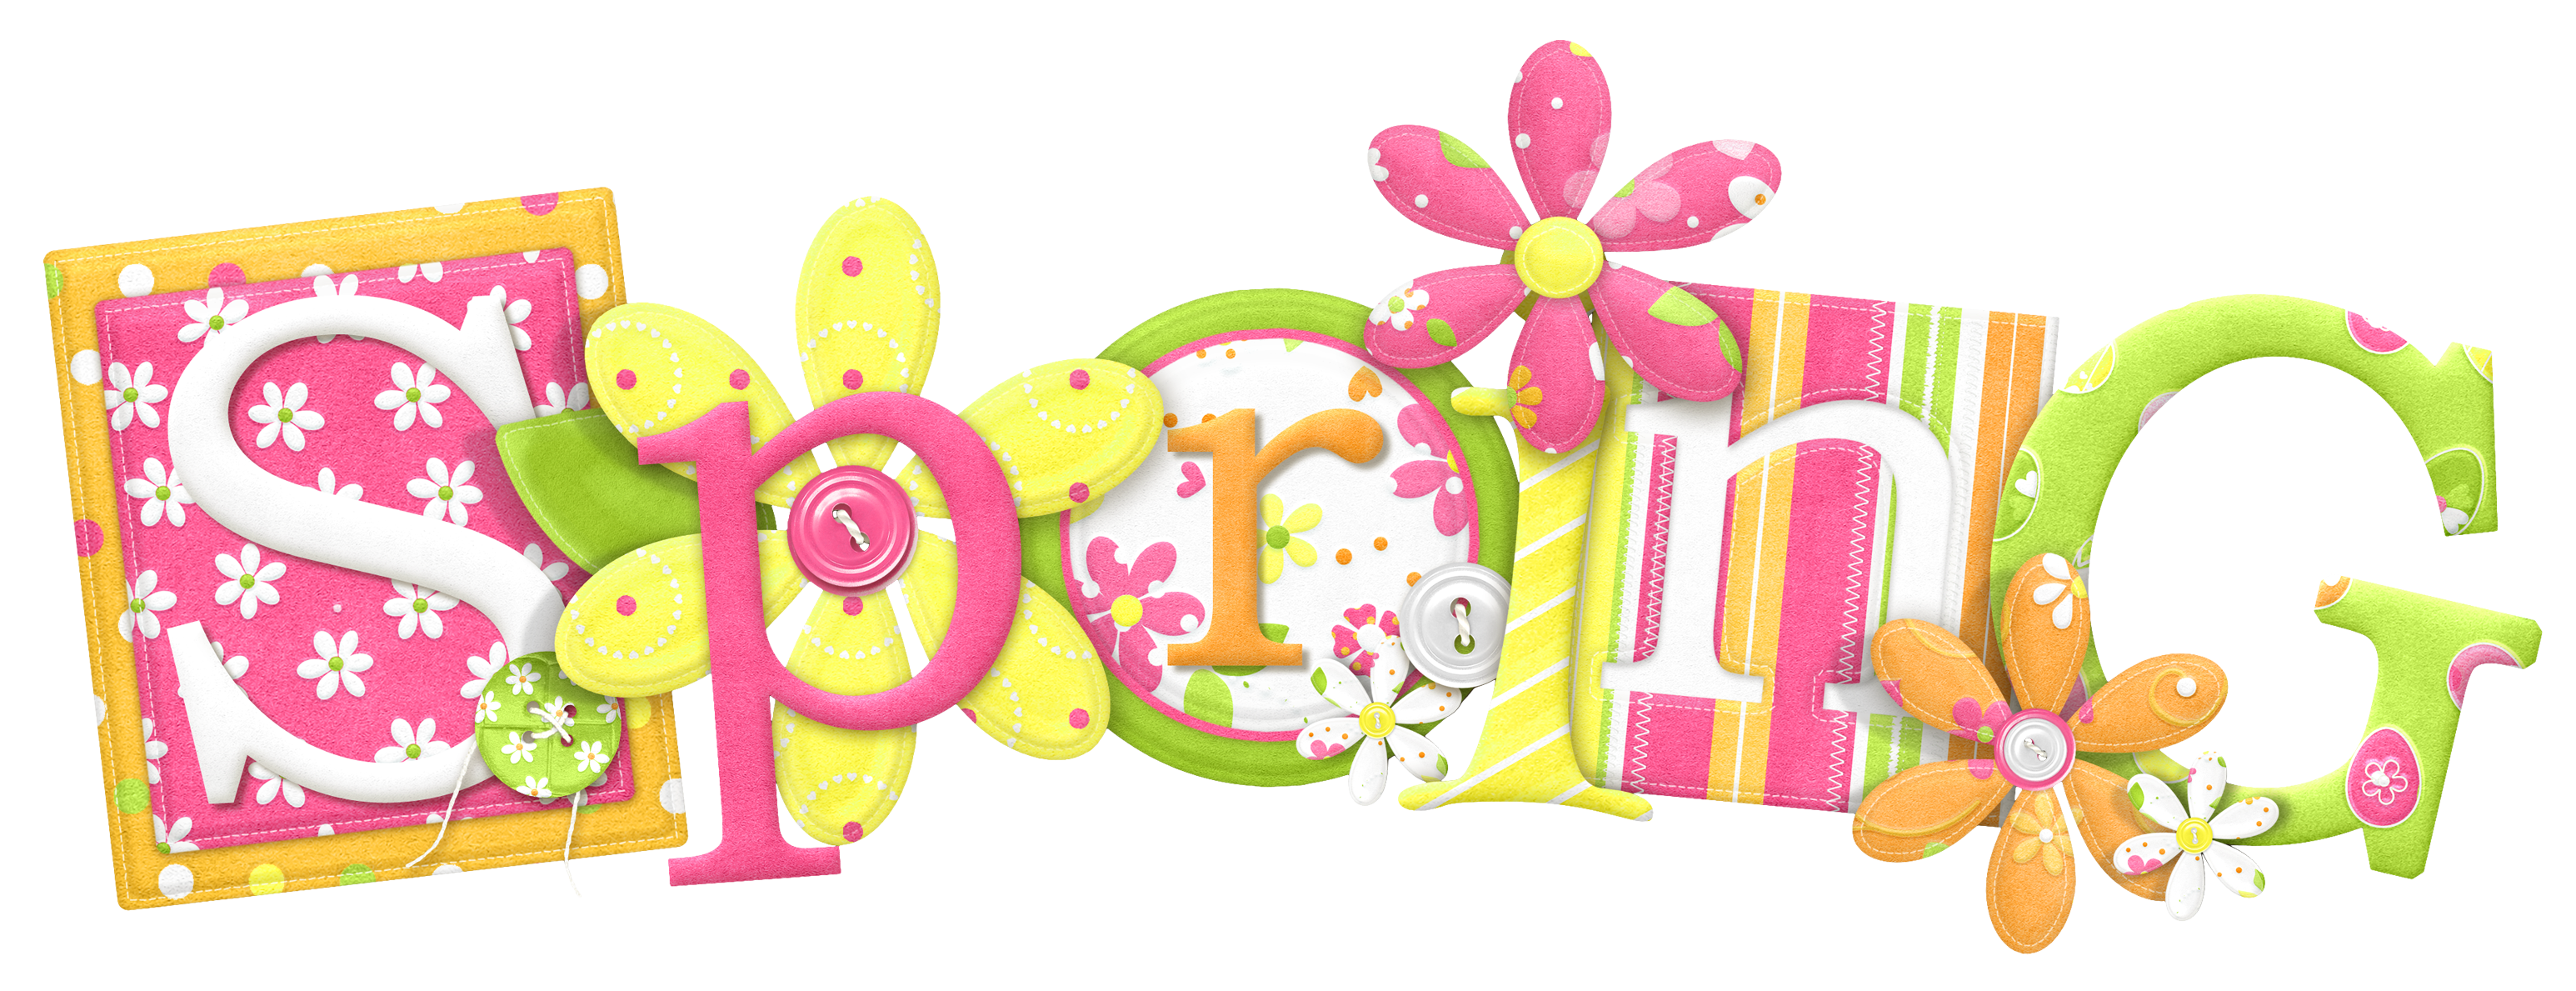 Text clipart spring Download on  Free Spring